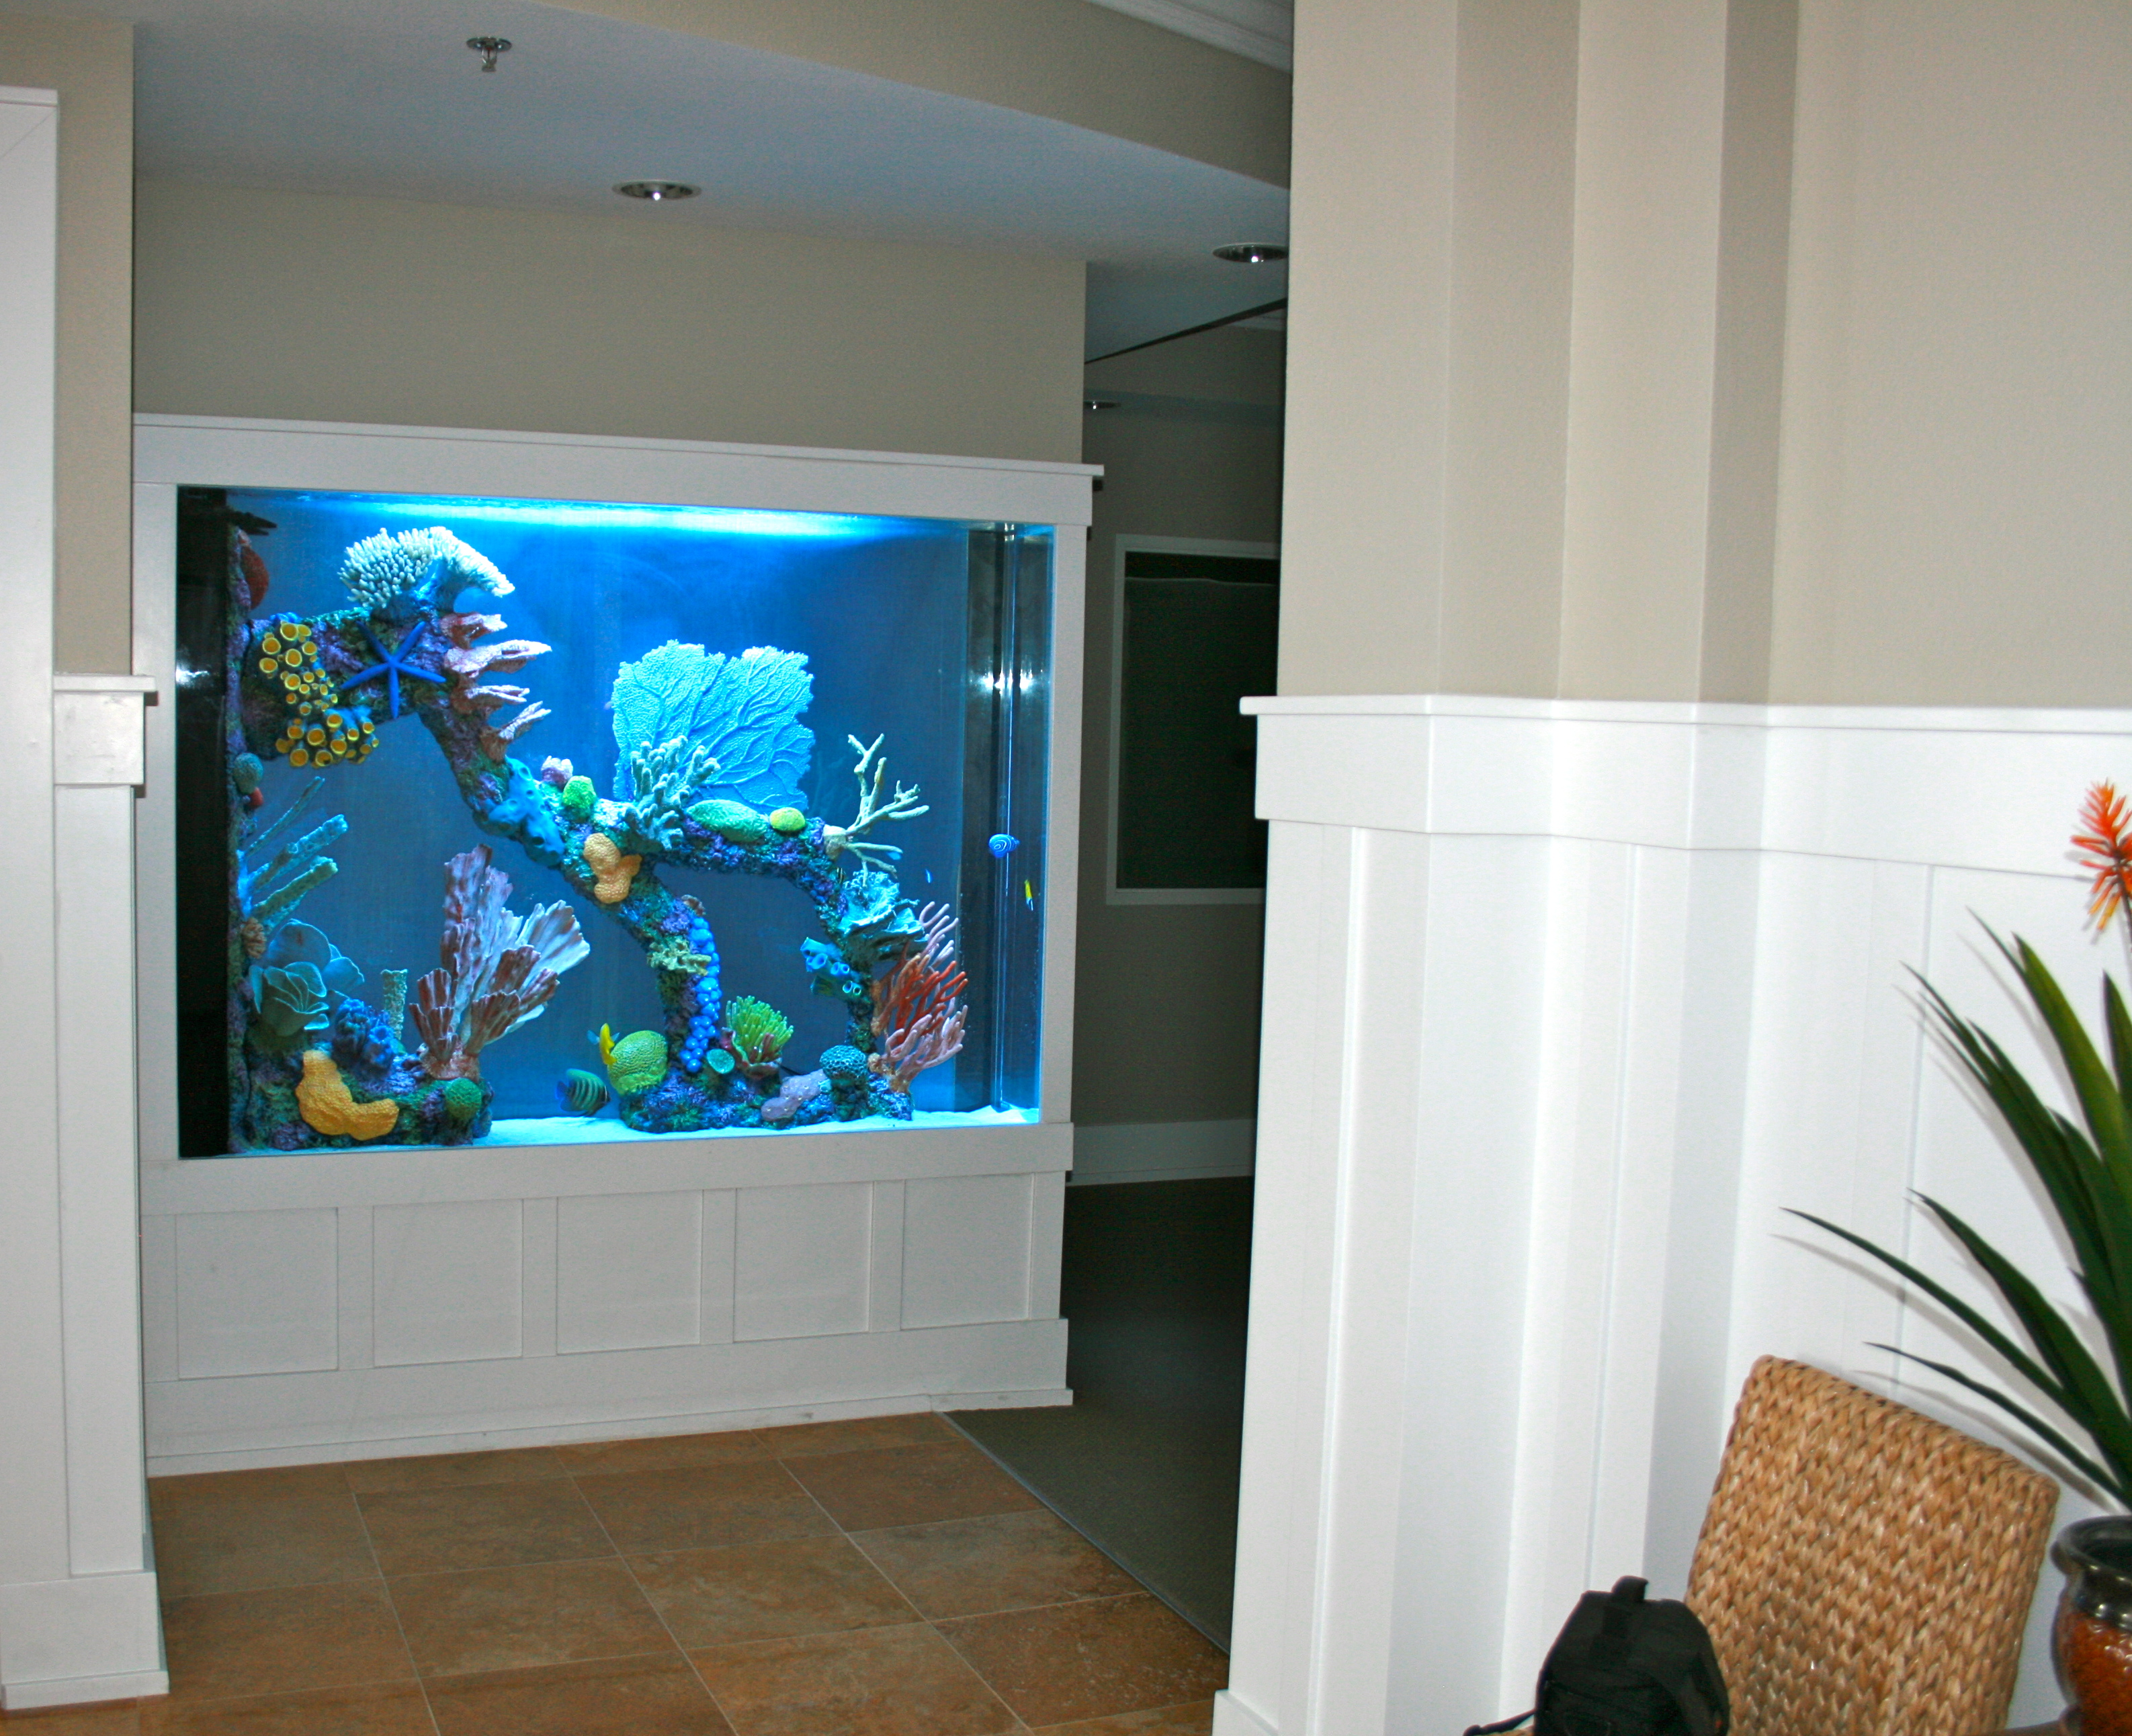 600 Gallon Marine Aquarium Room Divider With Faux Reef